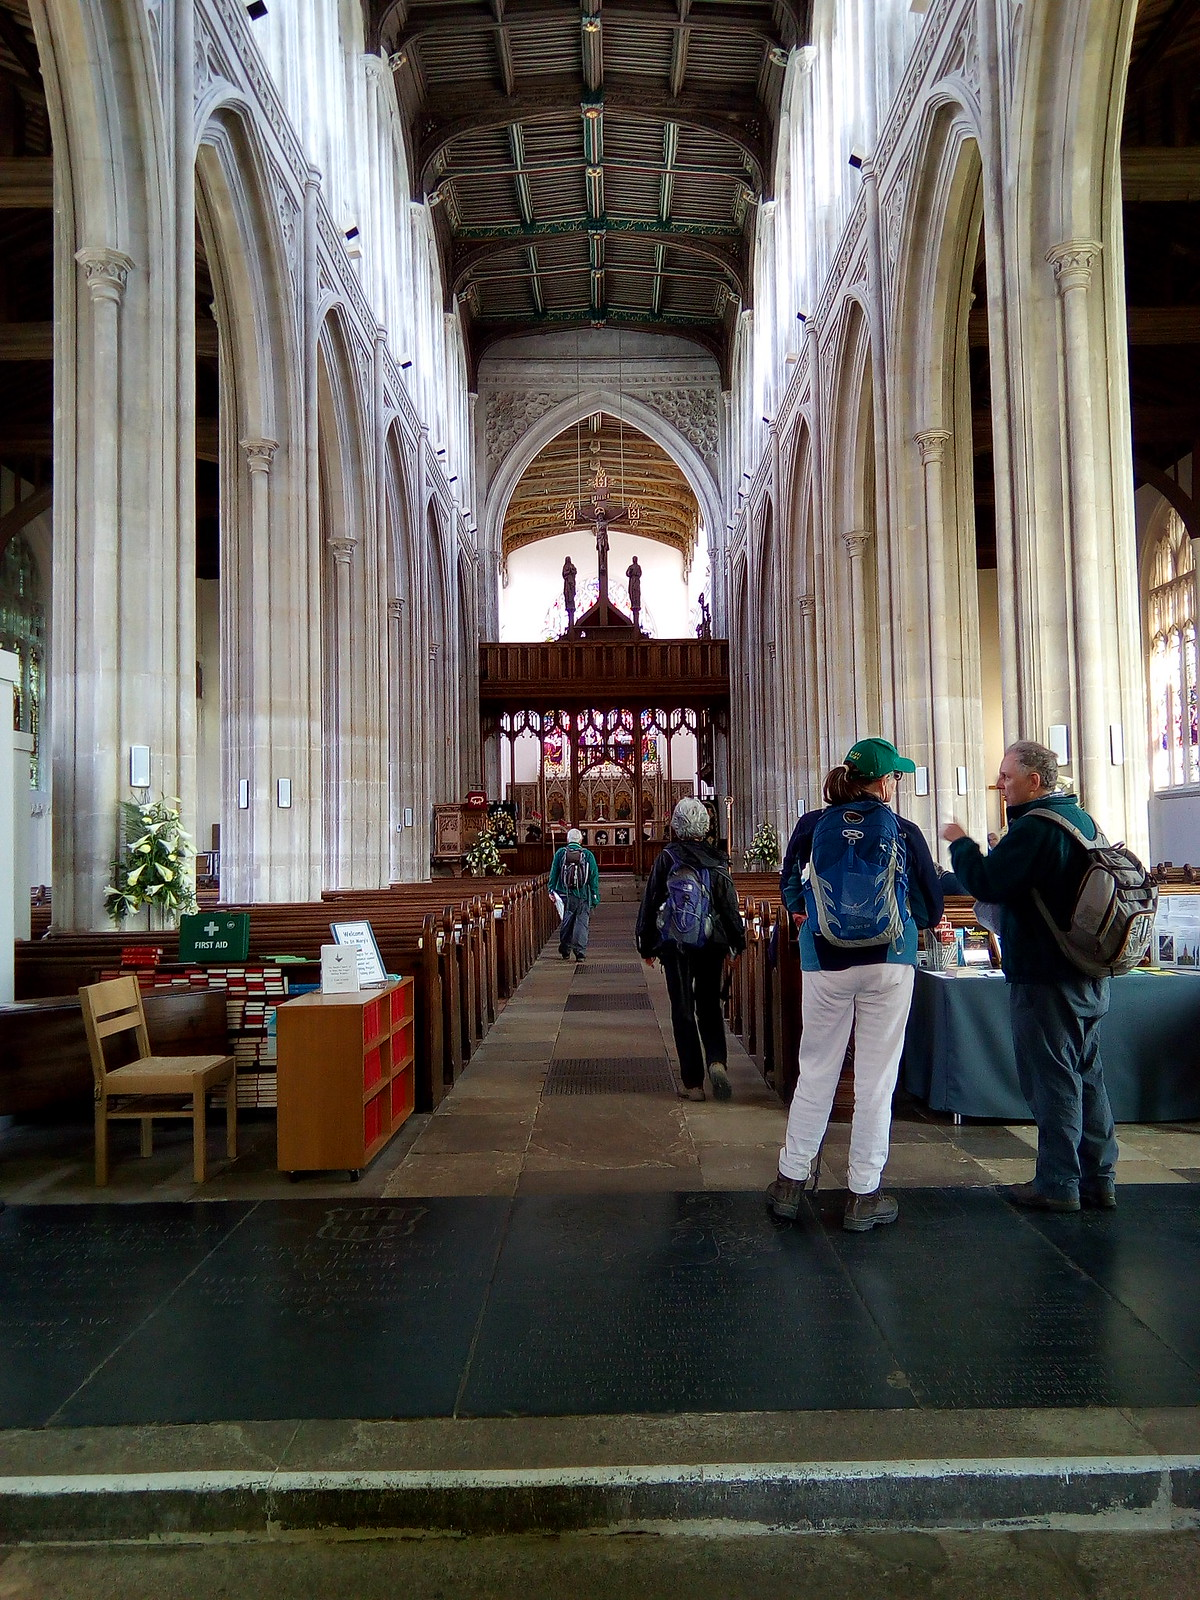 Inside St. Marys Saffron Walden